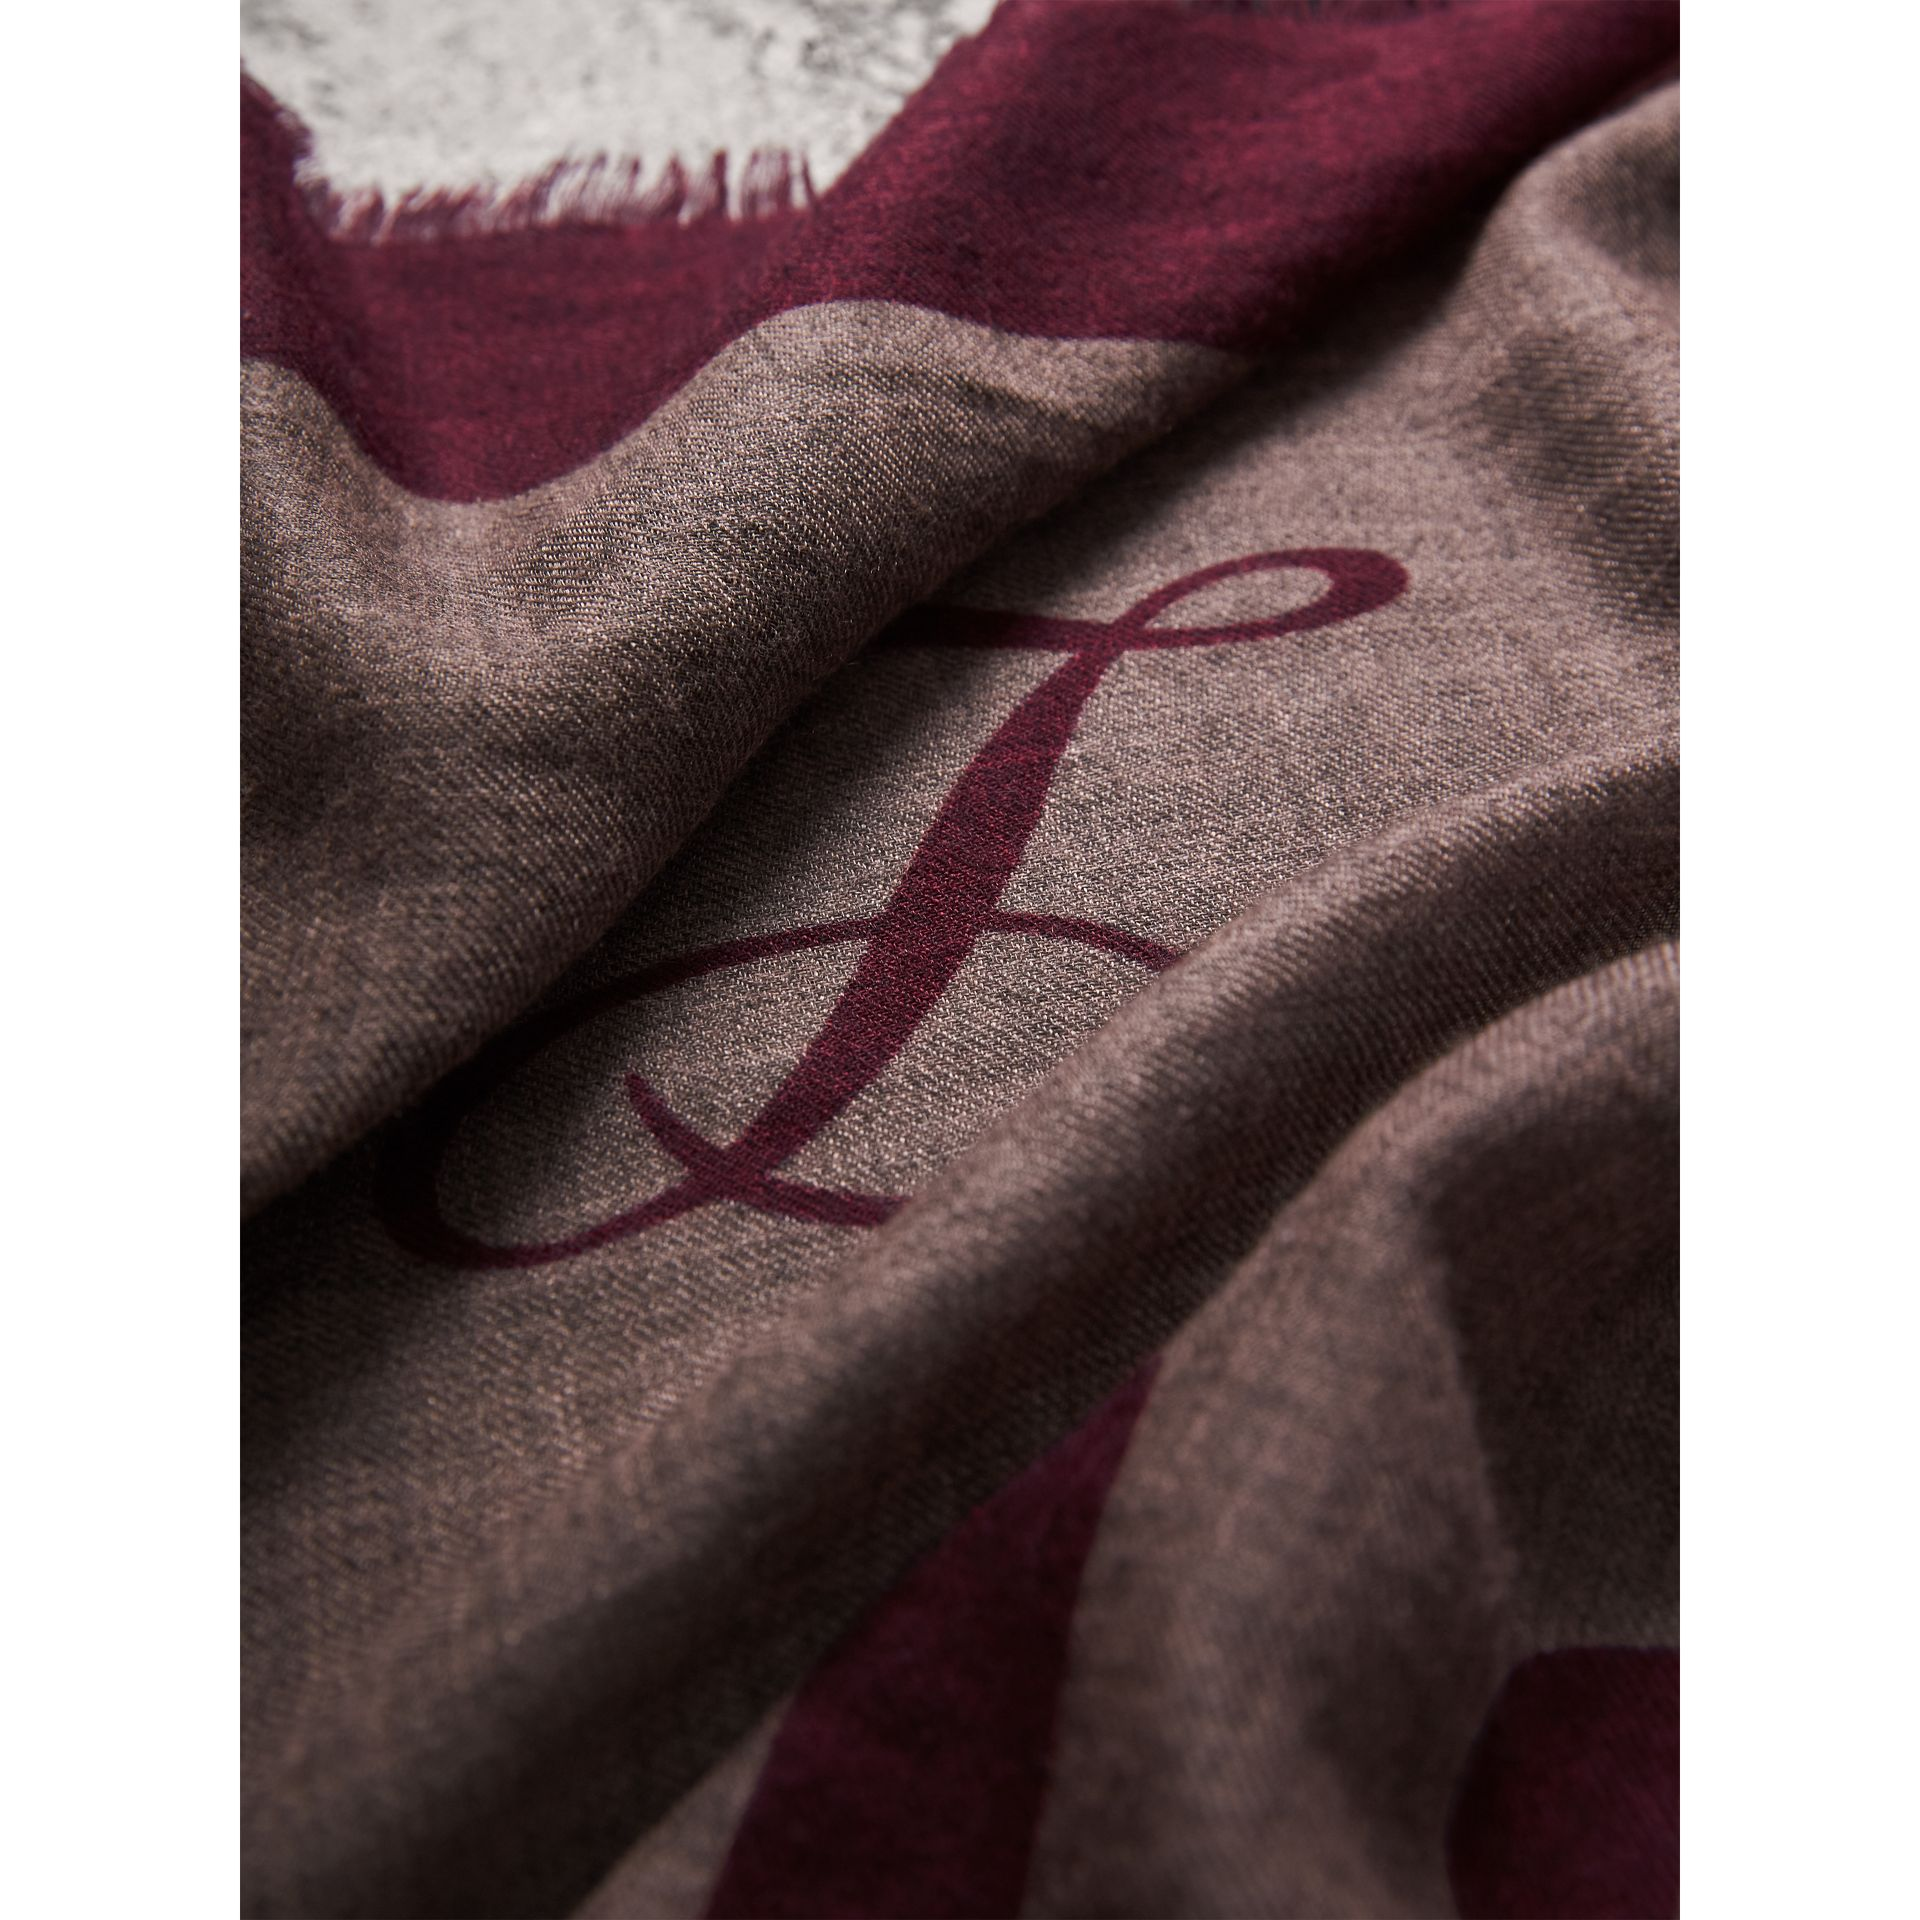 Graphic Print Motif  Lightweight Cashmere Scarf in Ash Rose - Women | Burberry - gallery image 2